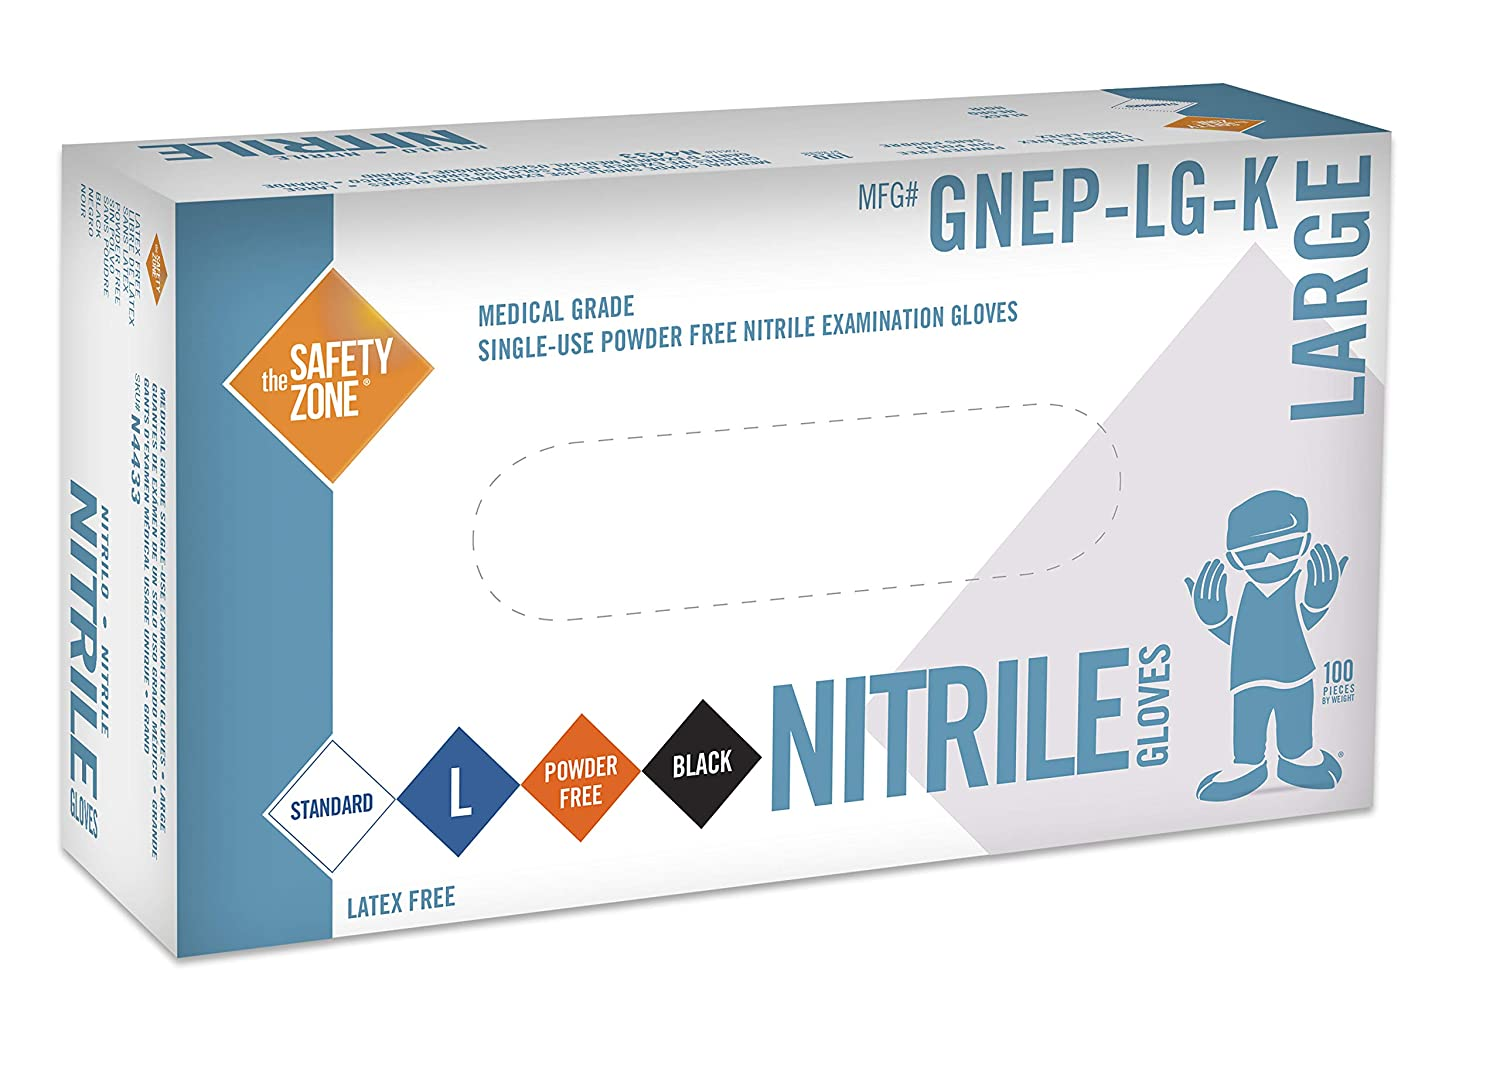 Black Nitrile Exam Gloves - Medical Grade, Disposable, Powder Free, Latex  Rubber Free, Heavy Duty, Textured, Non Sterile, Work, Medical, Food Safe,